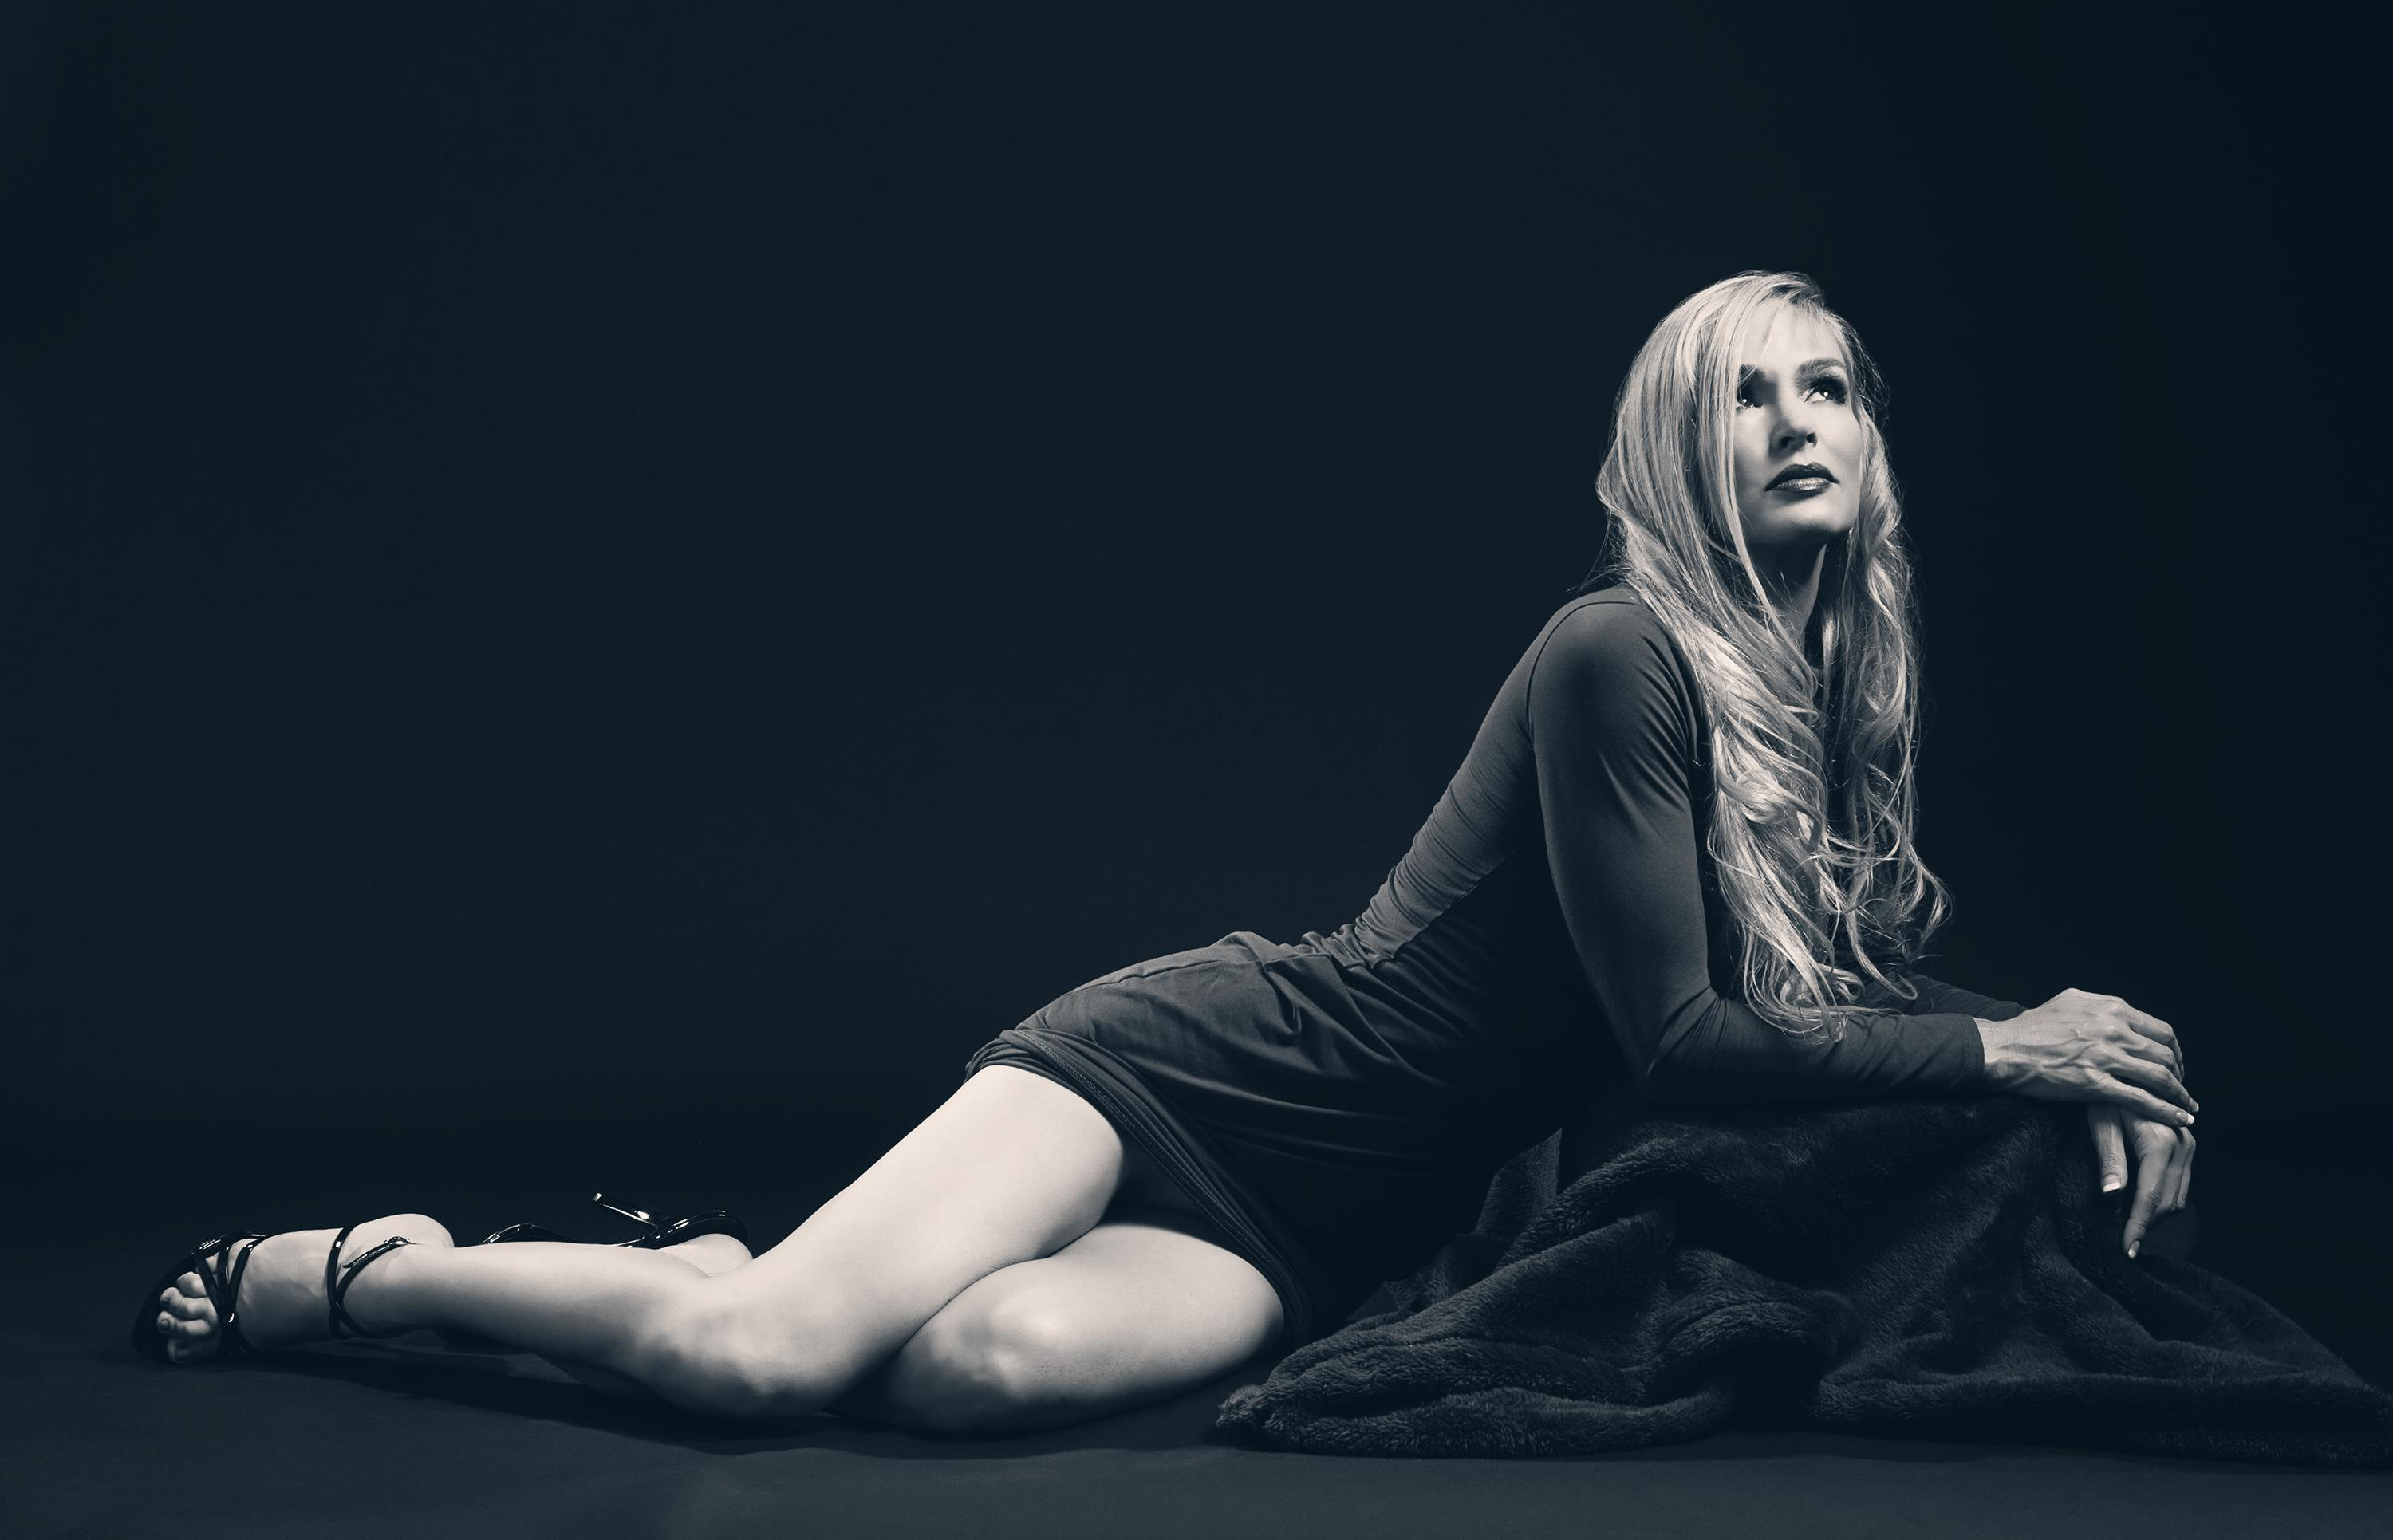 Classic looking blonde model in knee length dress photographed in black and white